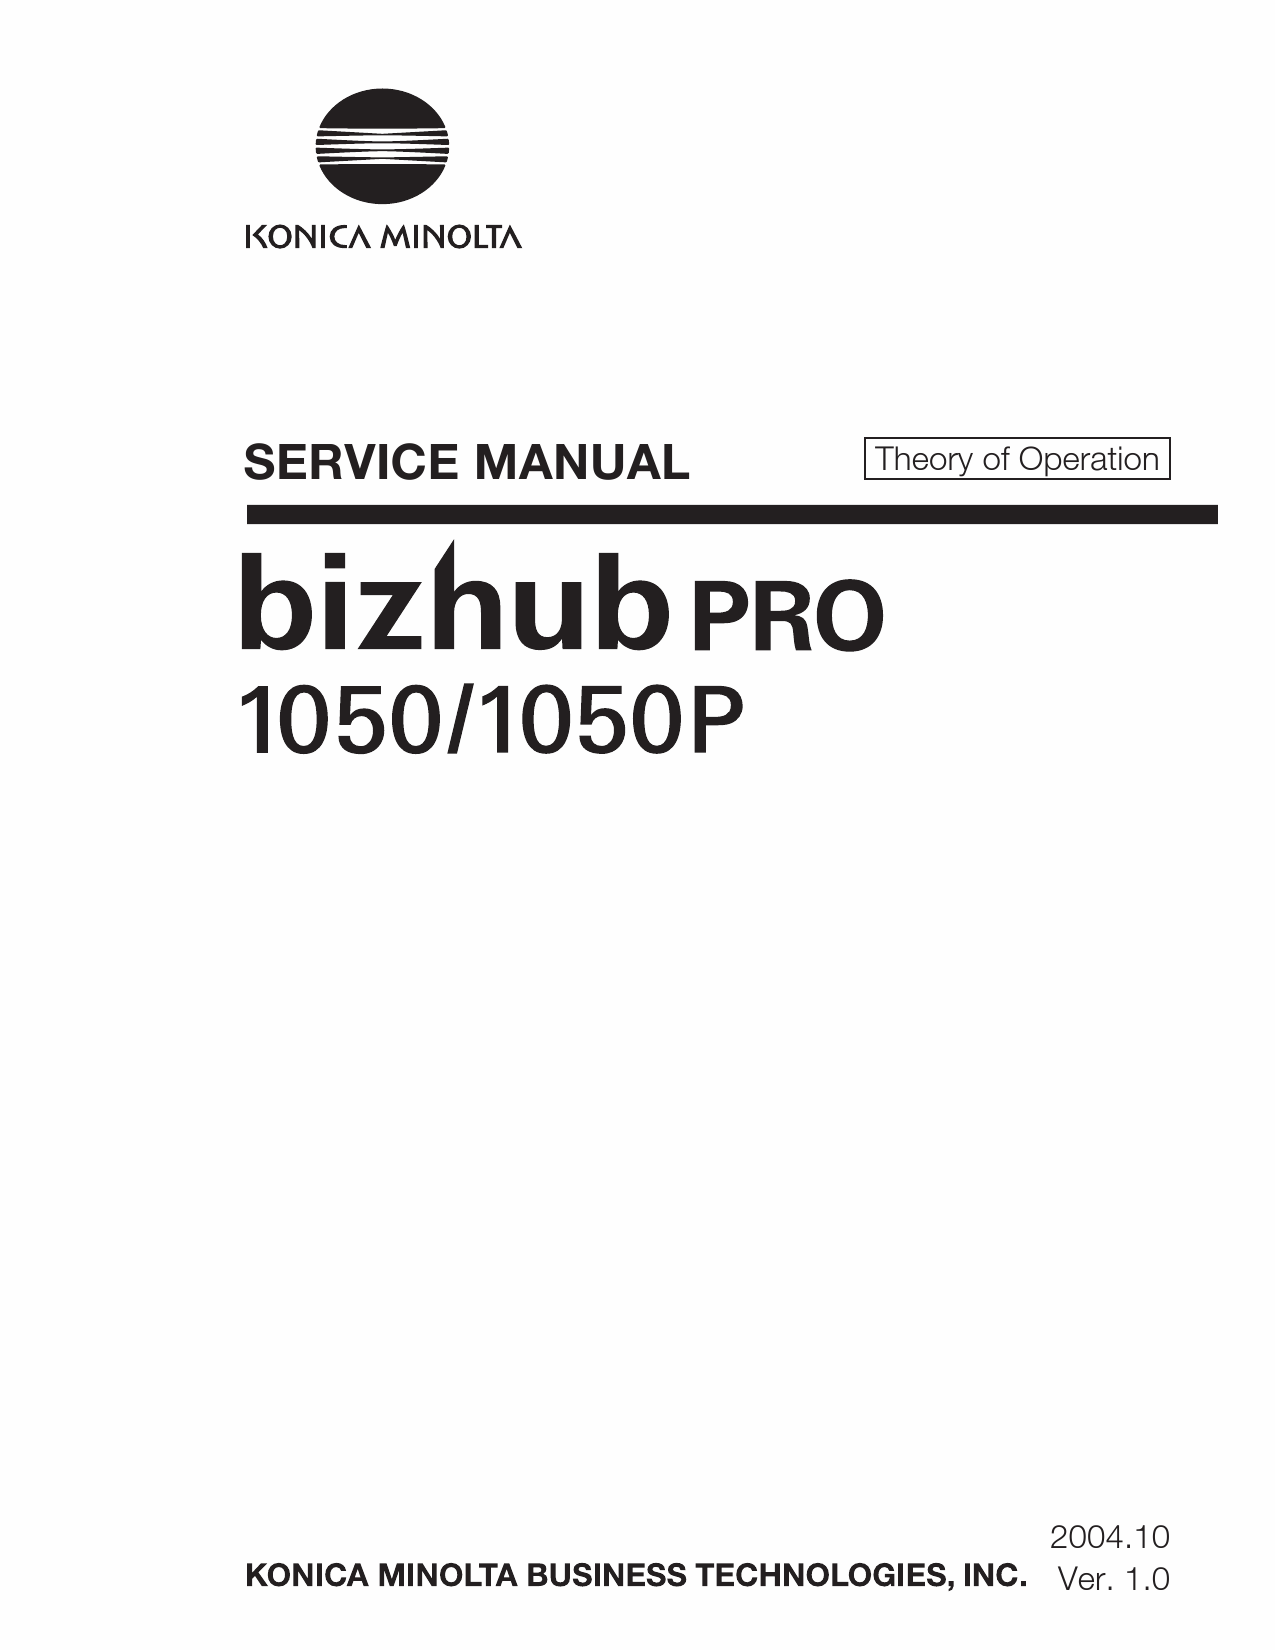 Konica-Minolta bizhub-PRO 1050 1050P THEORY-OPERATION